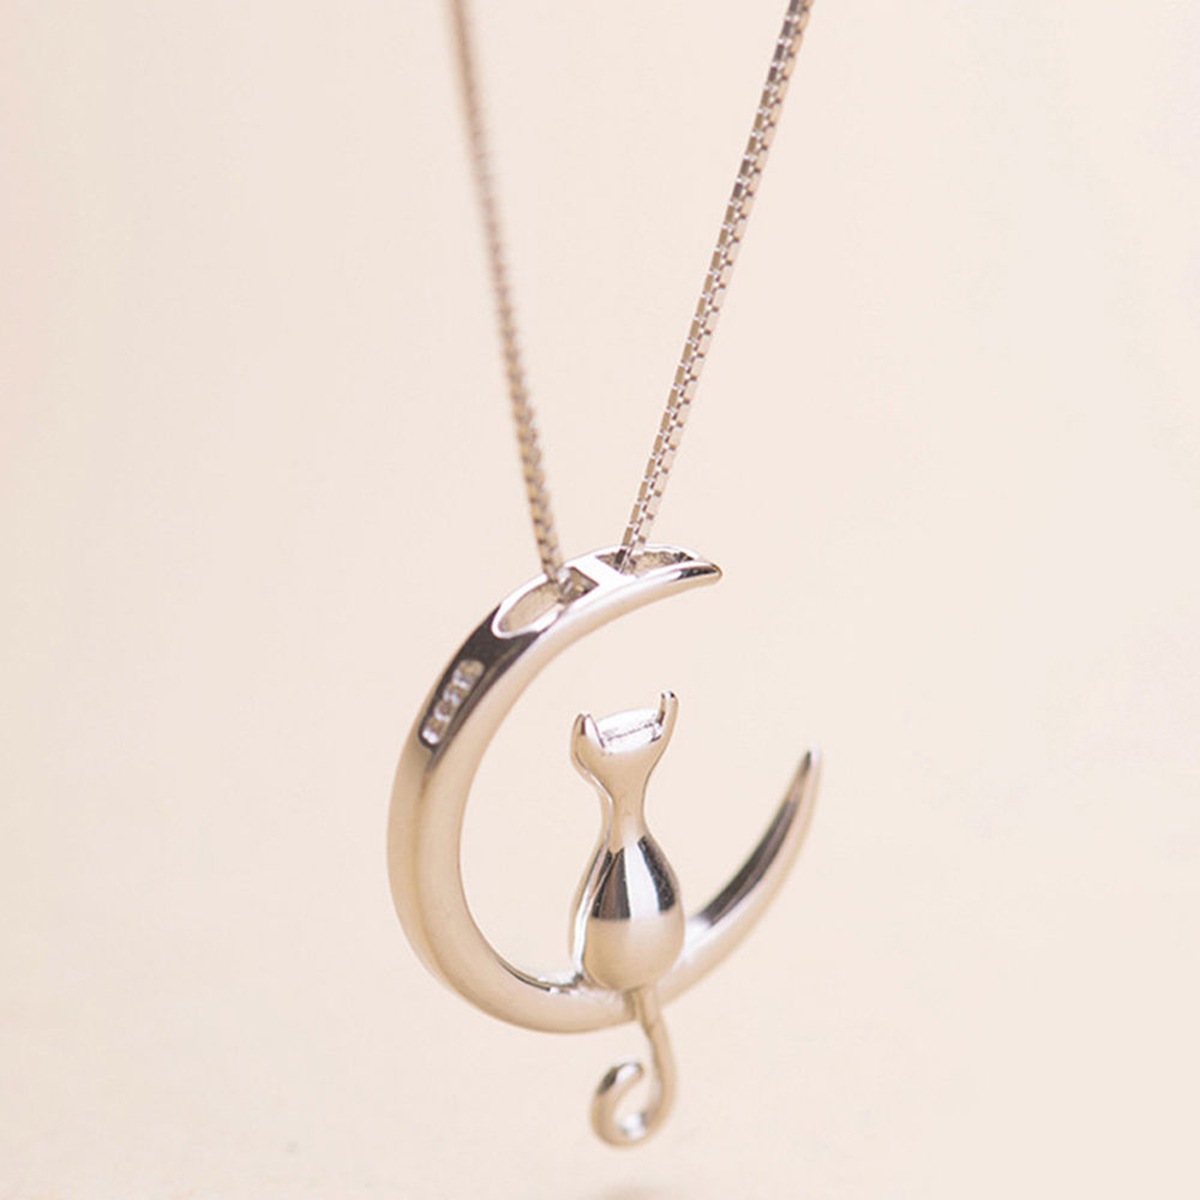 Vintage Moon Lovely Cat Necklaces Pendant Charming Silver Chain Cat On The Moon  Statement Necklace Trendy Animal Pet Jewelry